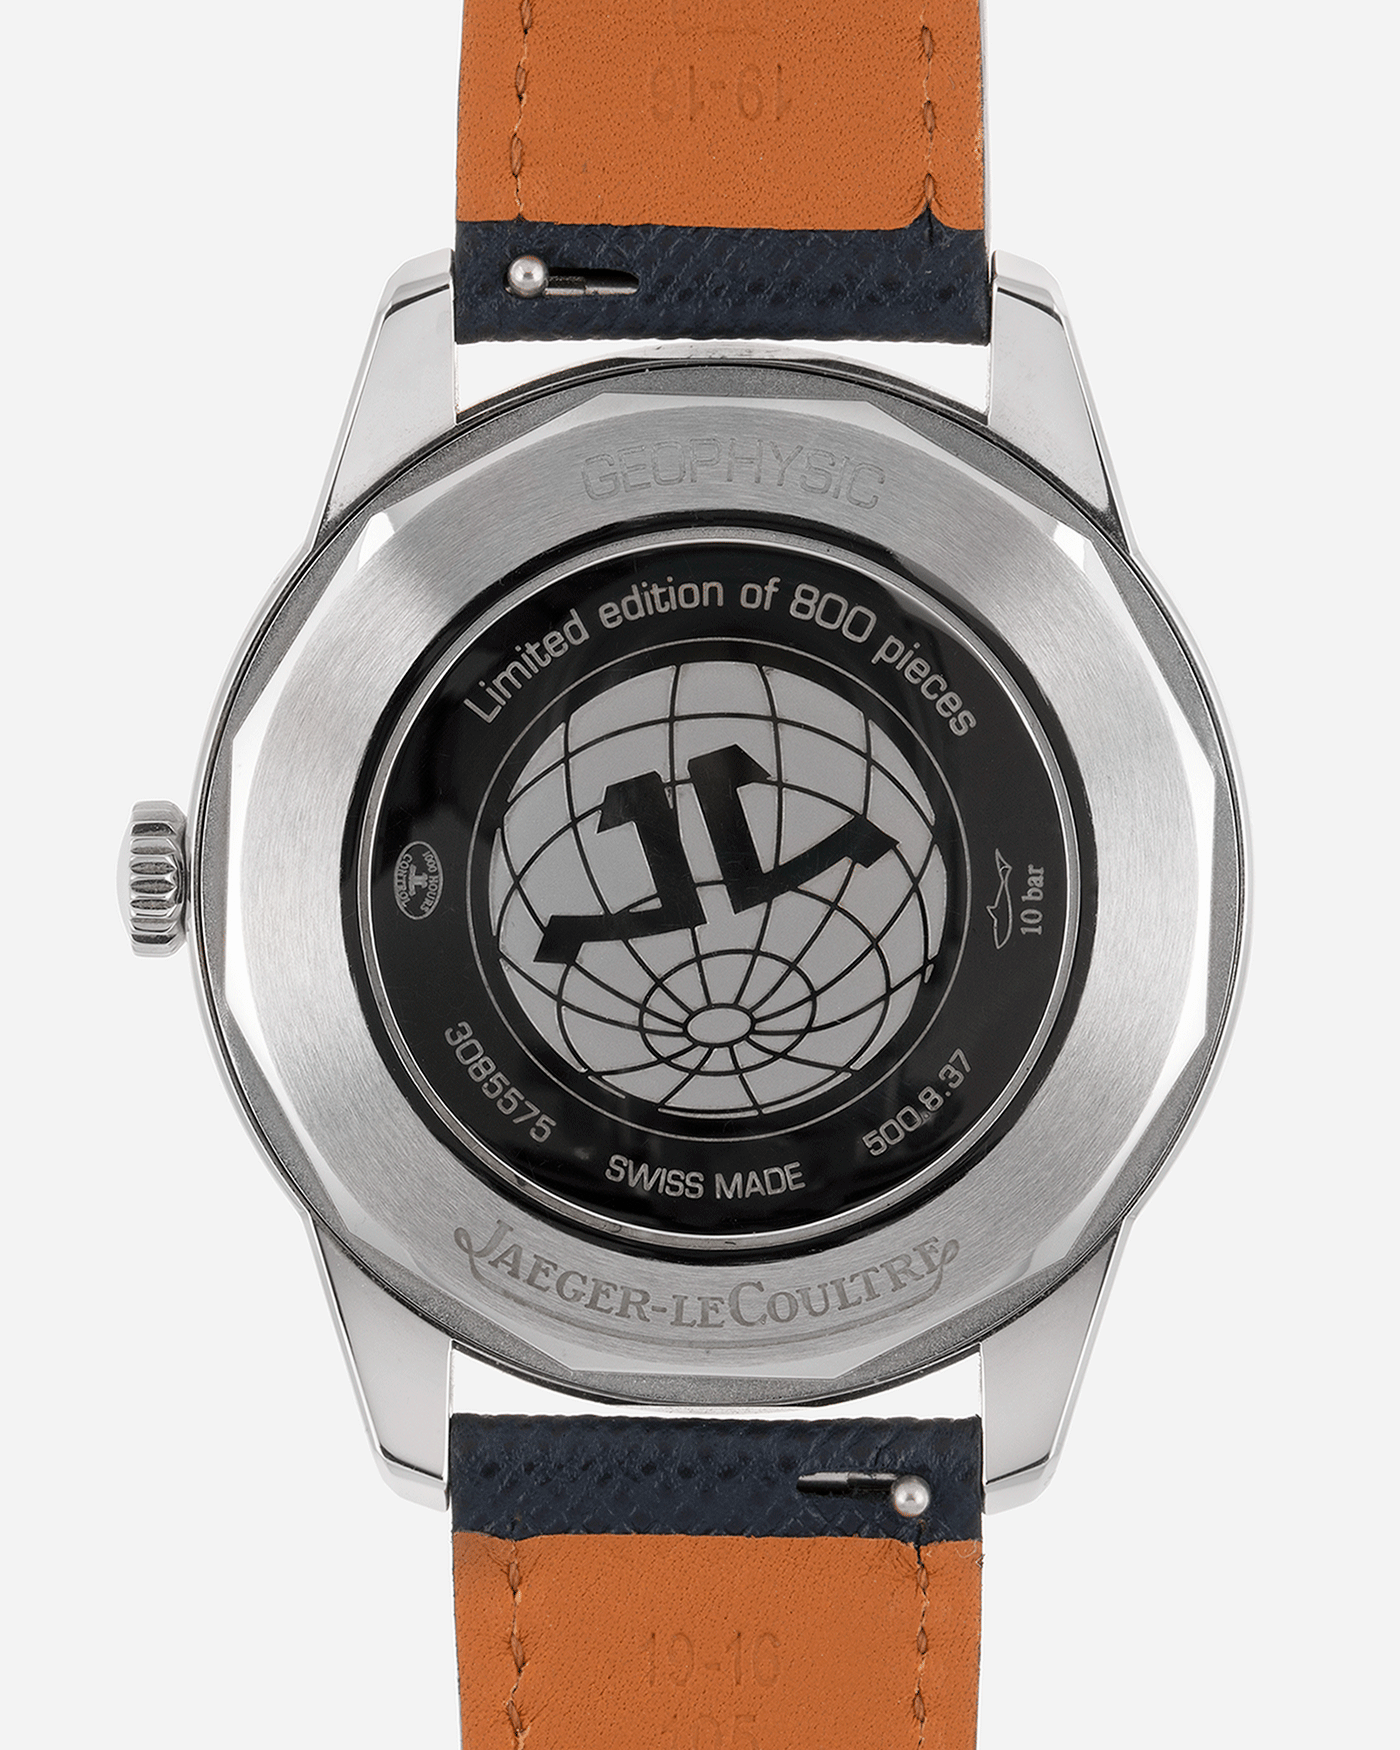 Brand: Jaeger-LeCoultre Year: 2014 Model: Geophysic 1958 Reference Number: Q8008520 Material: Stainless Steel Movement: In-house self winding Cal. 898/1 Case Diameter: 38.5mm Bracelet/Strap: Black Jaeger-LeCoultre Alligator Strap and Stainless Steel Tang Buckle and Molequin X S.Song Navy Calf Strap